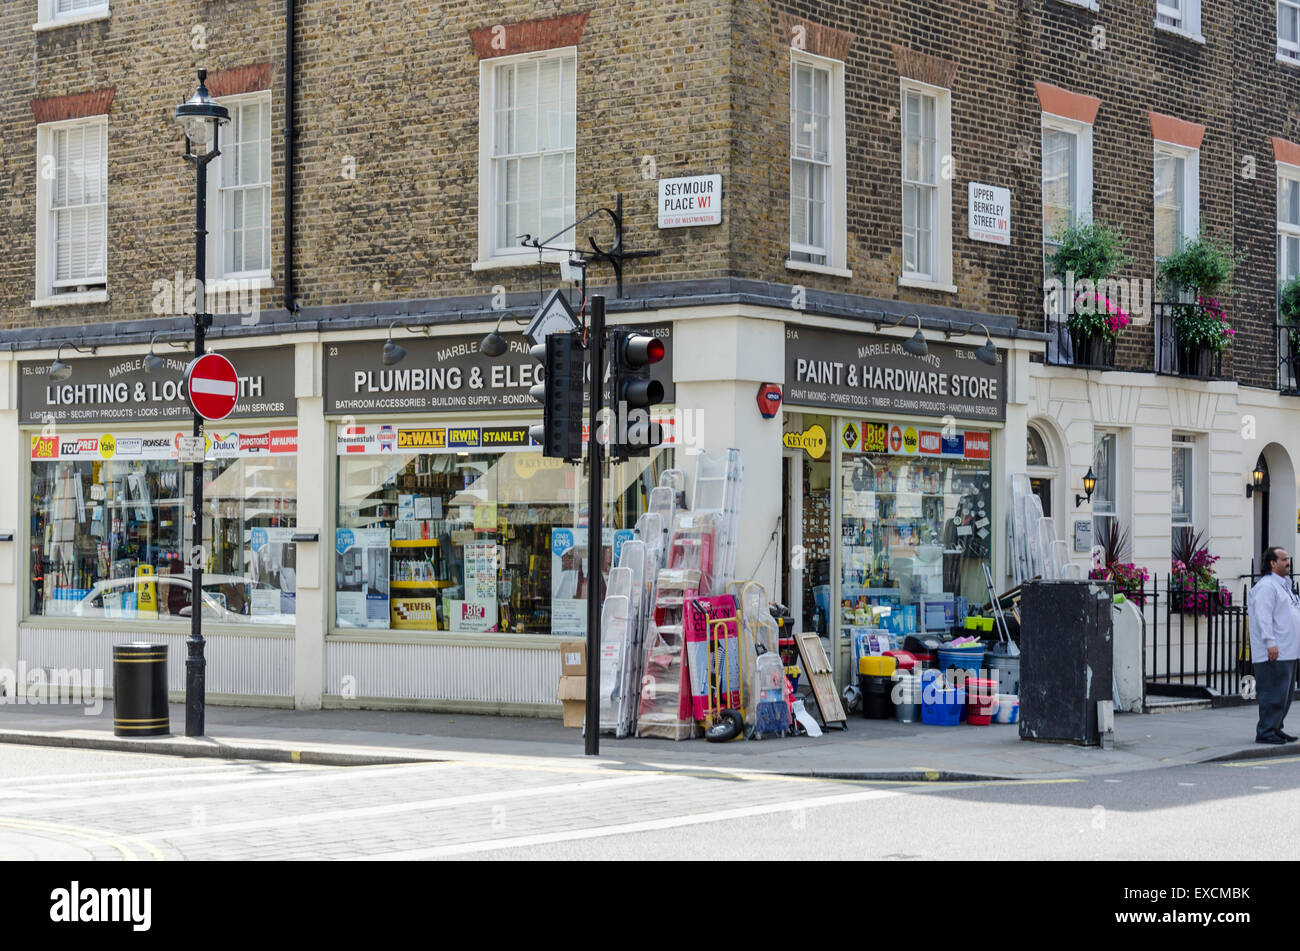 Hardware store on the corner of Seymour Place and Upper Berkeley Street, Westminster, London, UK - Stock Image